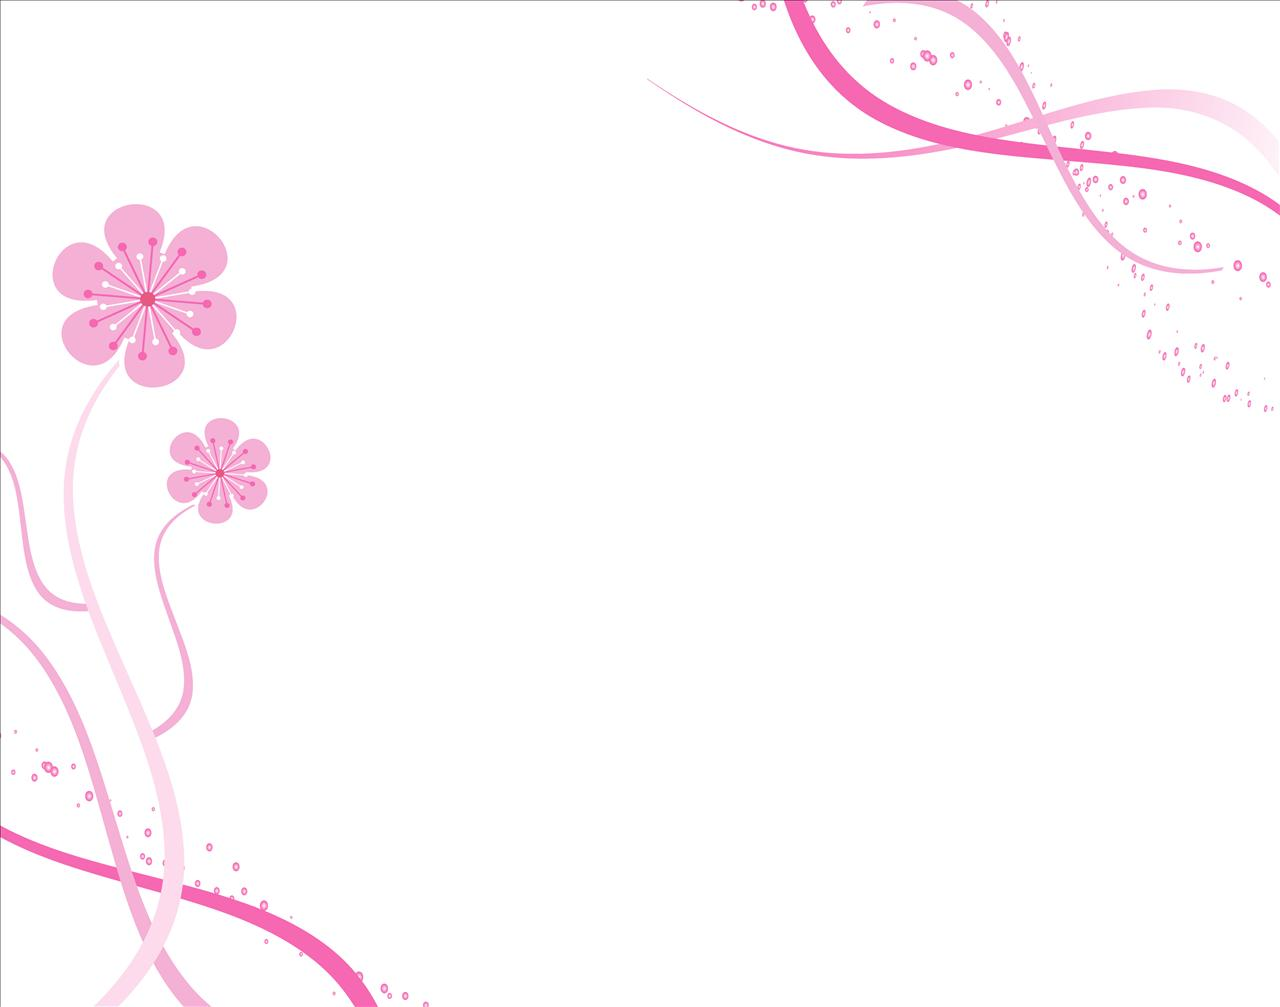 Spring Blossoms with Pink Backgrounds